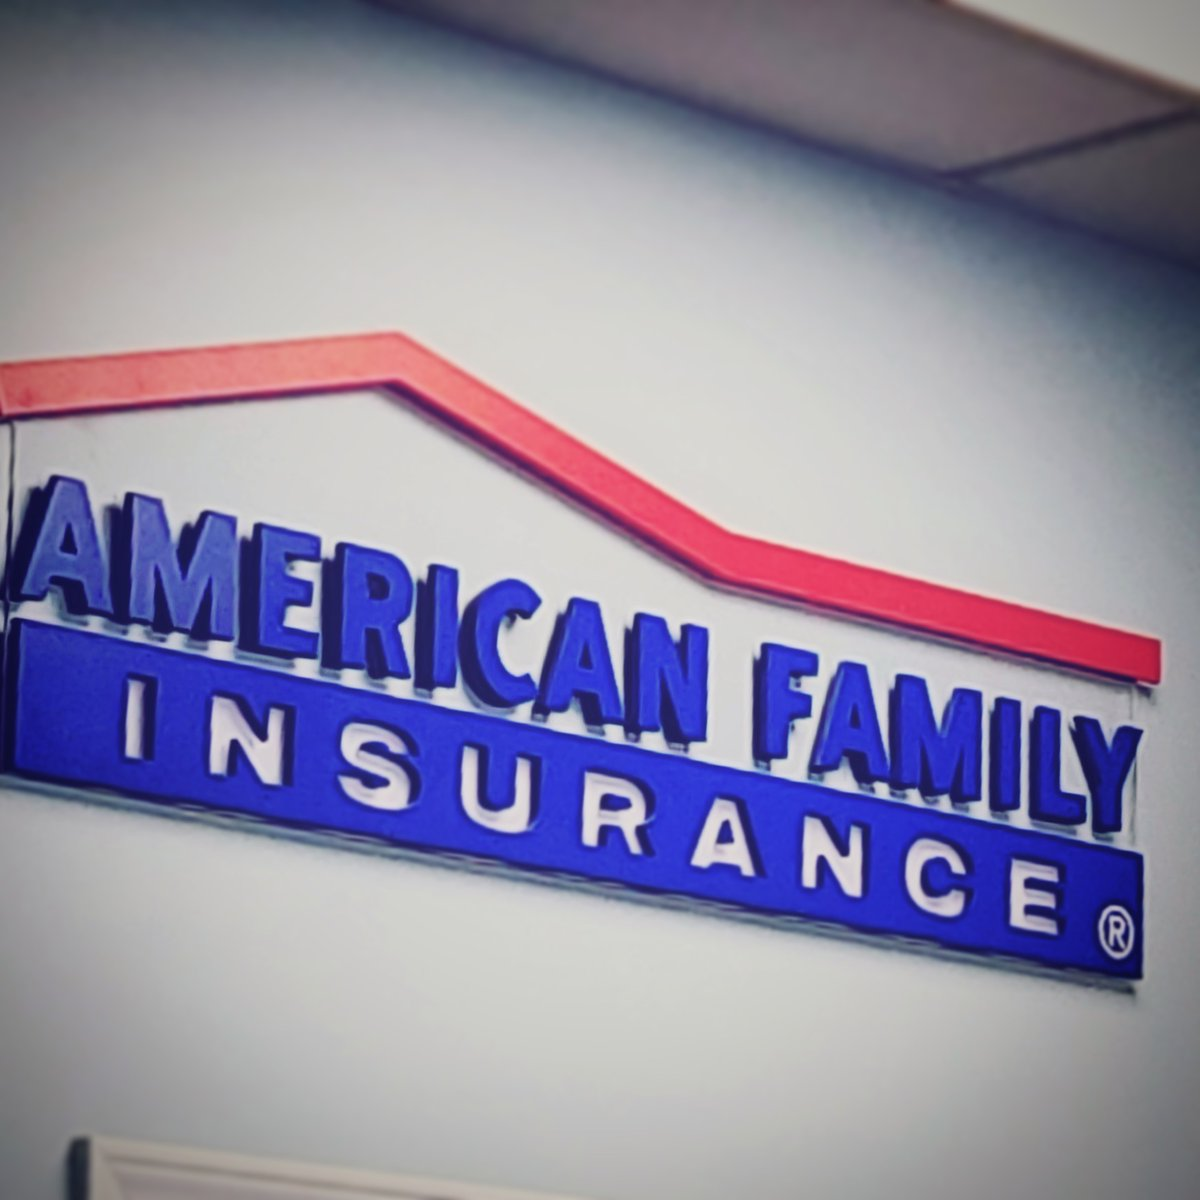 We are a proud @amfam agency in Topeka! We would love to hear from YOU on how we can help you with your insurance needs today! #callustoday #amfam #dennyandassoc #insurance #servingyou #topekaks